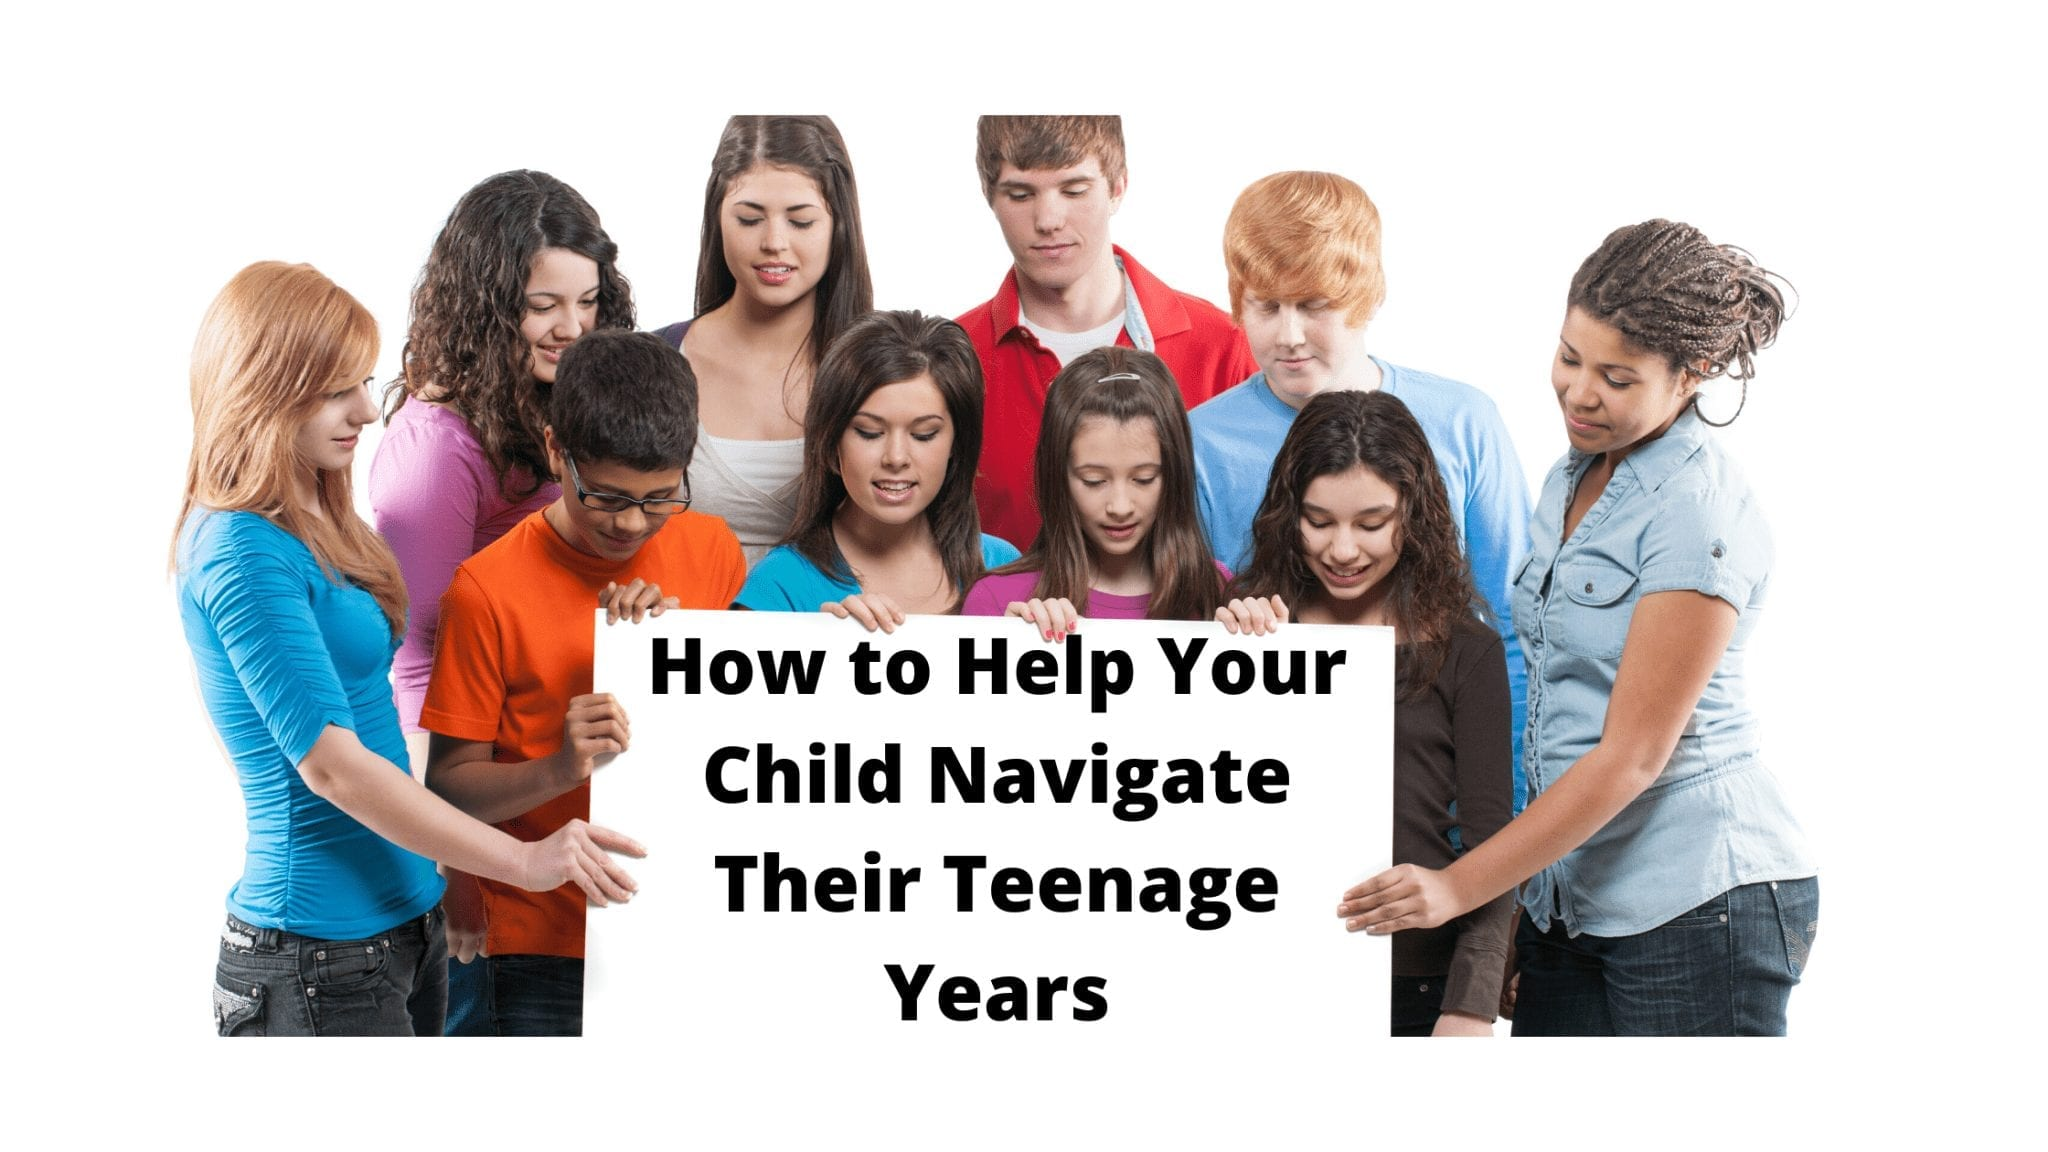 How to Help Your Child Navigate Their Teenage Years